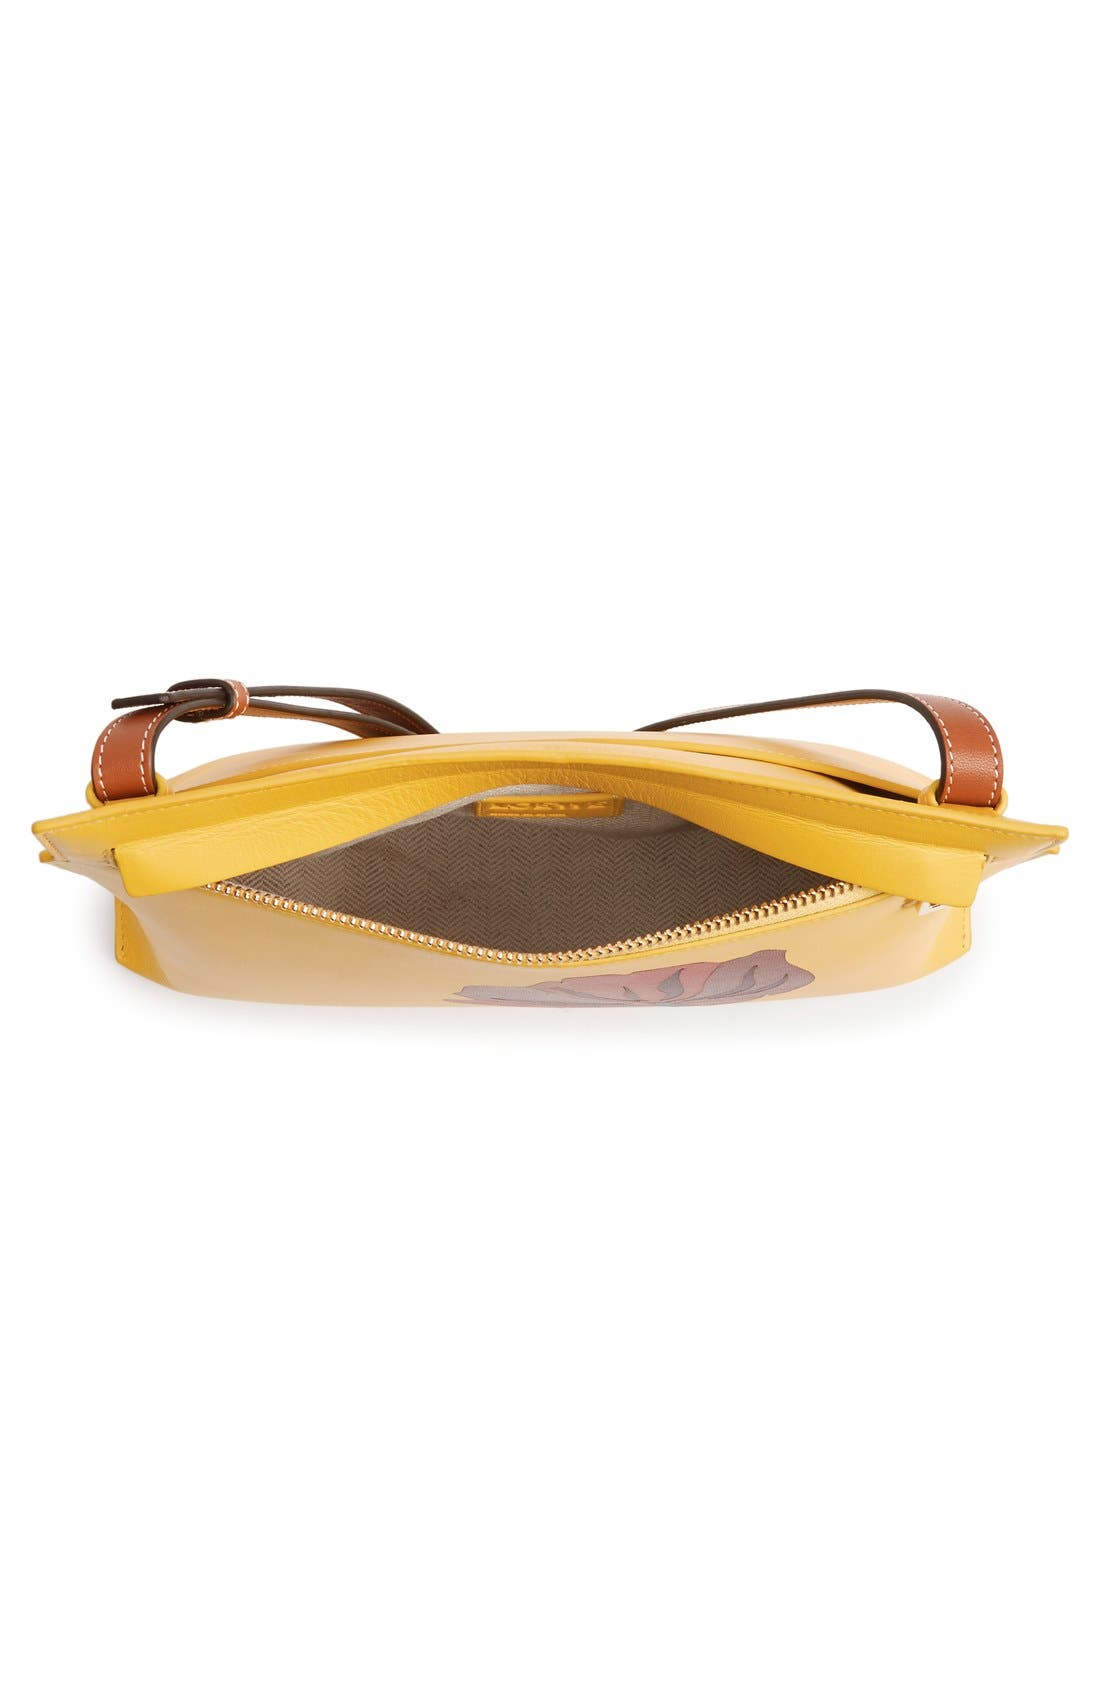 Alternate Image 4  - Loewe 'Fiore' Marquetry Calfskin Leather Crossbody Clutch